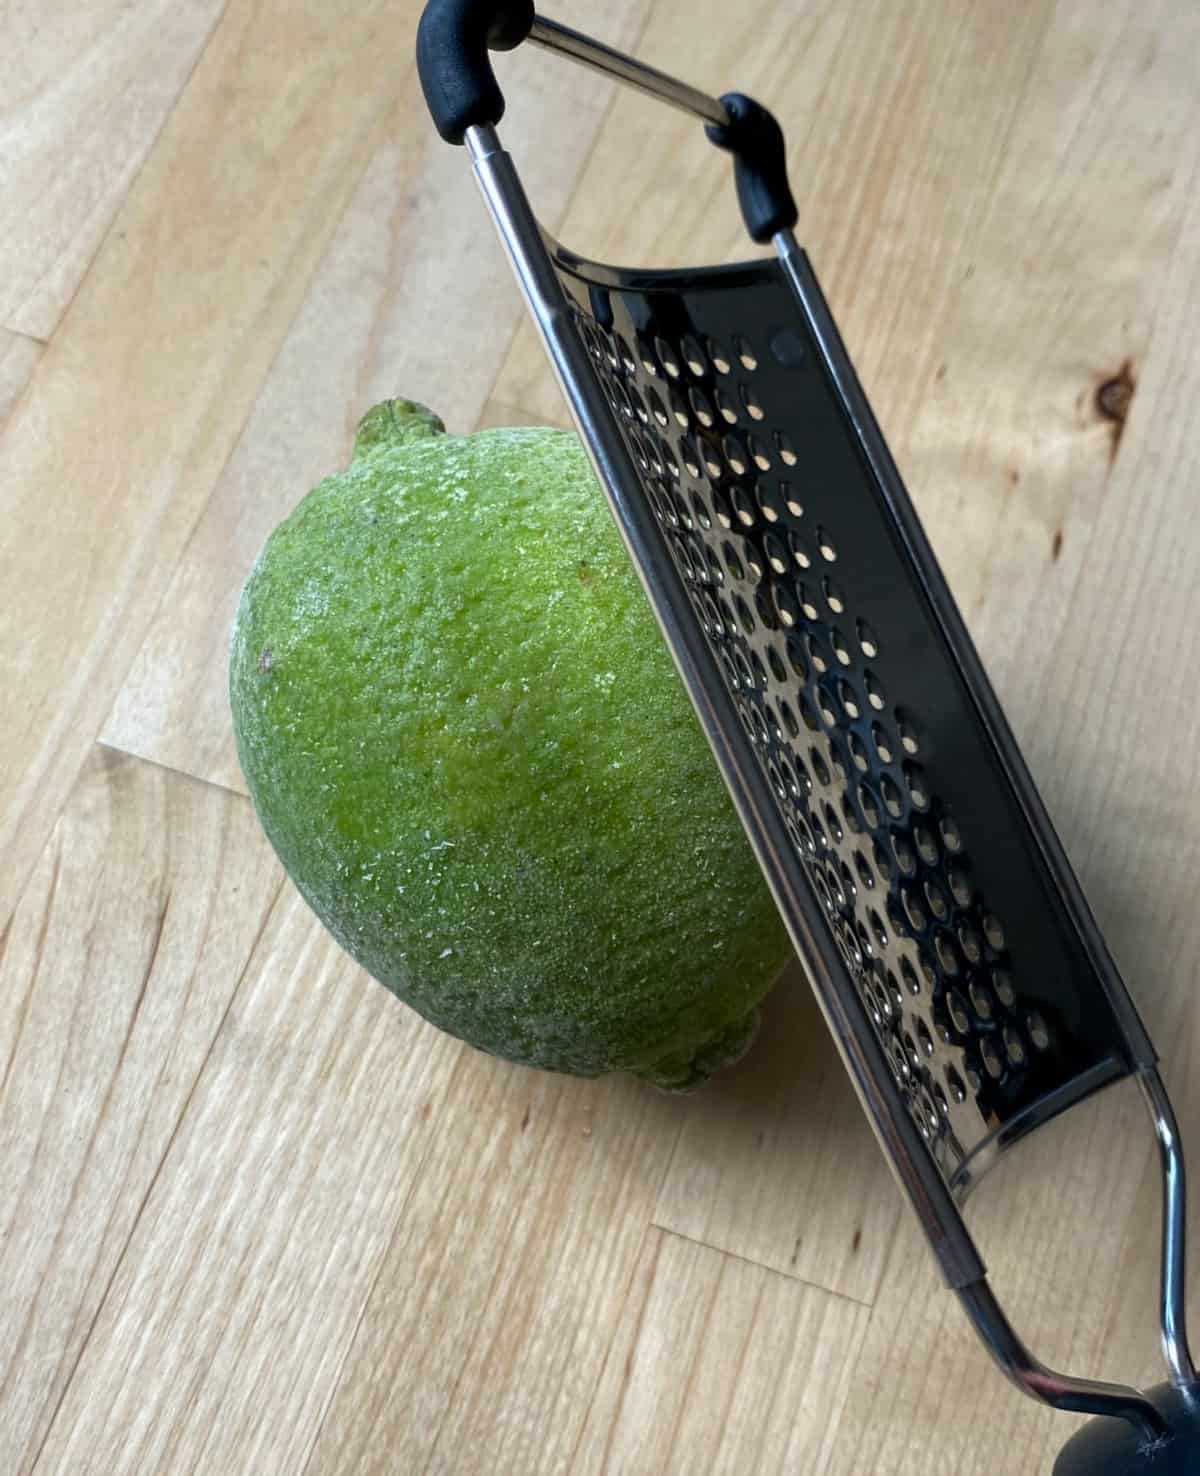 A grater grating the zest of a frozen lime.